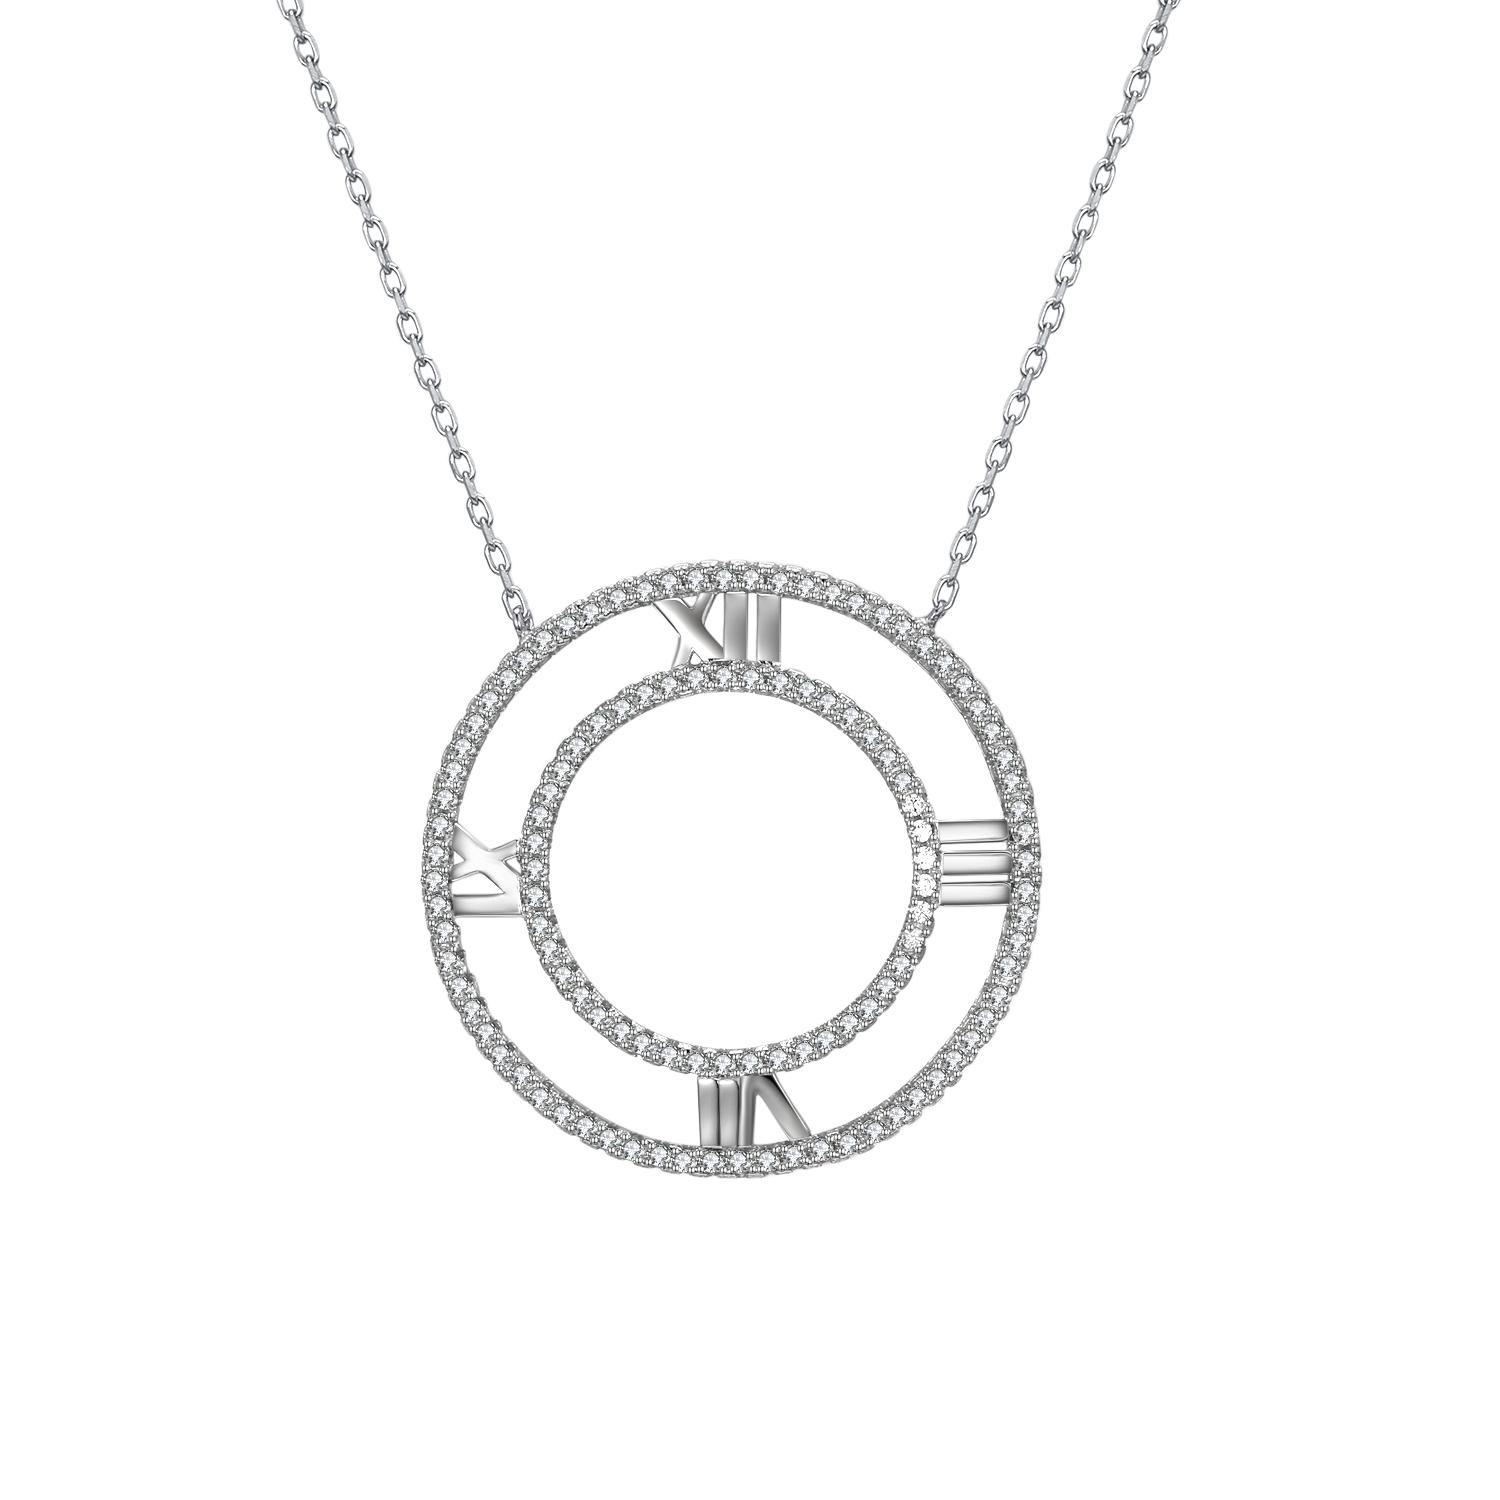 Statement Choker Necklace Sterling Silver Pendant Big Circle shape Jewelry Suspension Casual/Sporty Women 925 silver Pendants